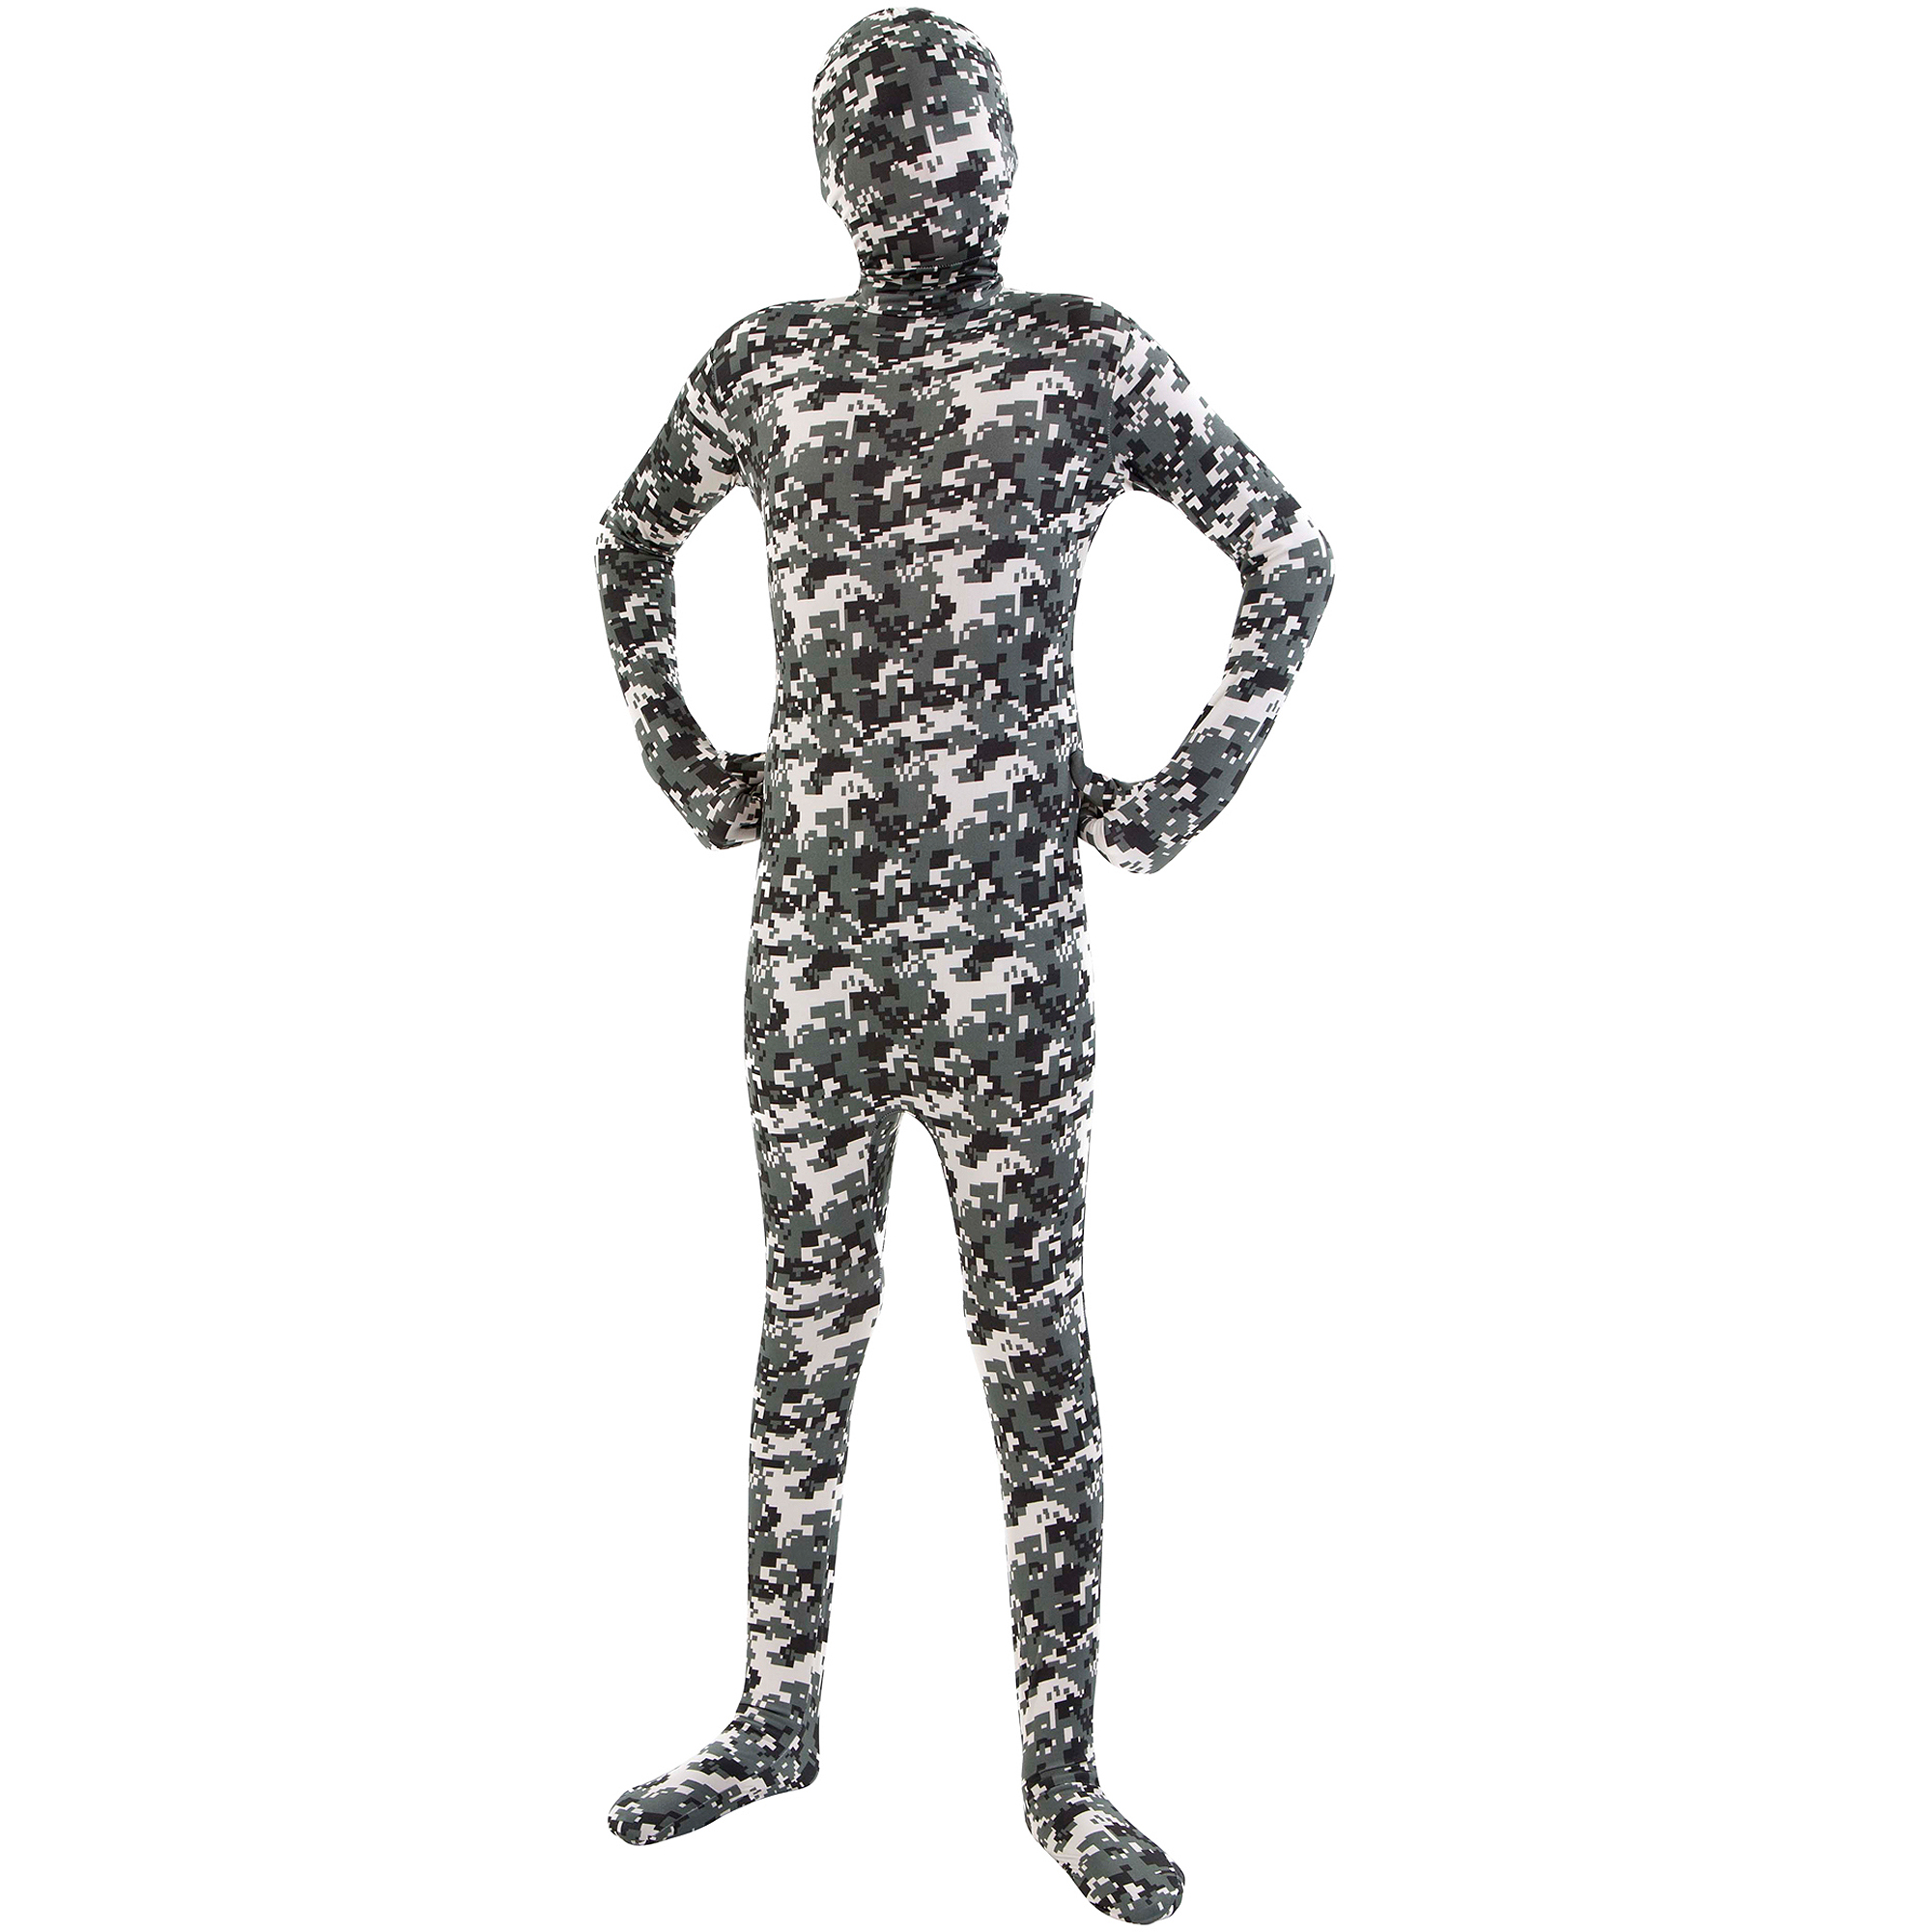 Camouflage Skin Suit Adult Halloween Costume